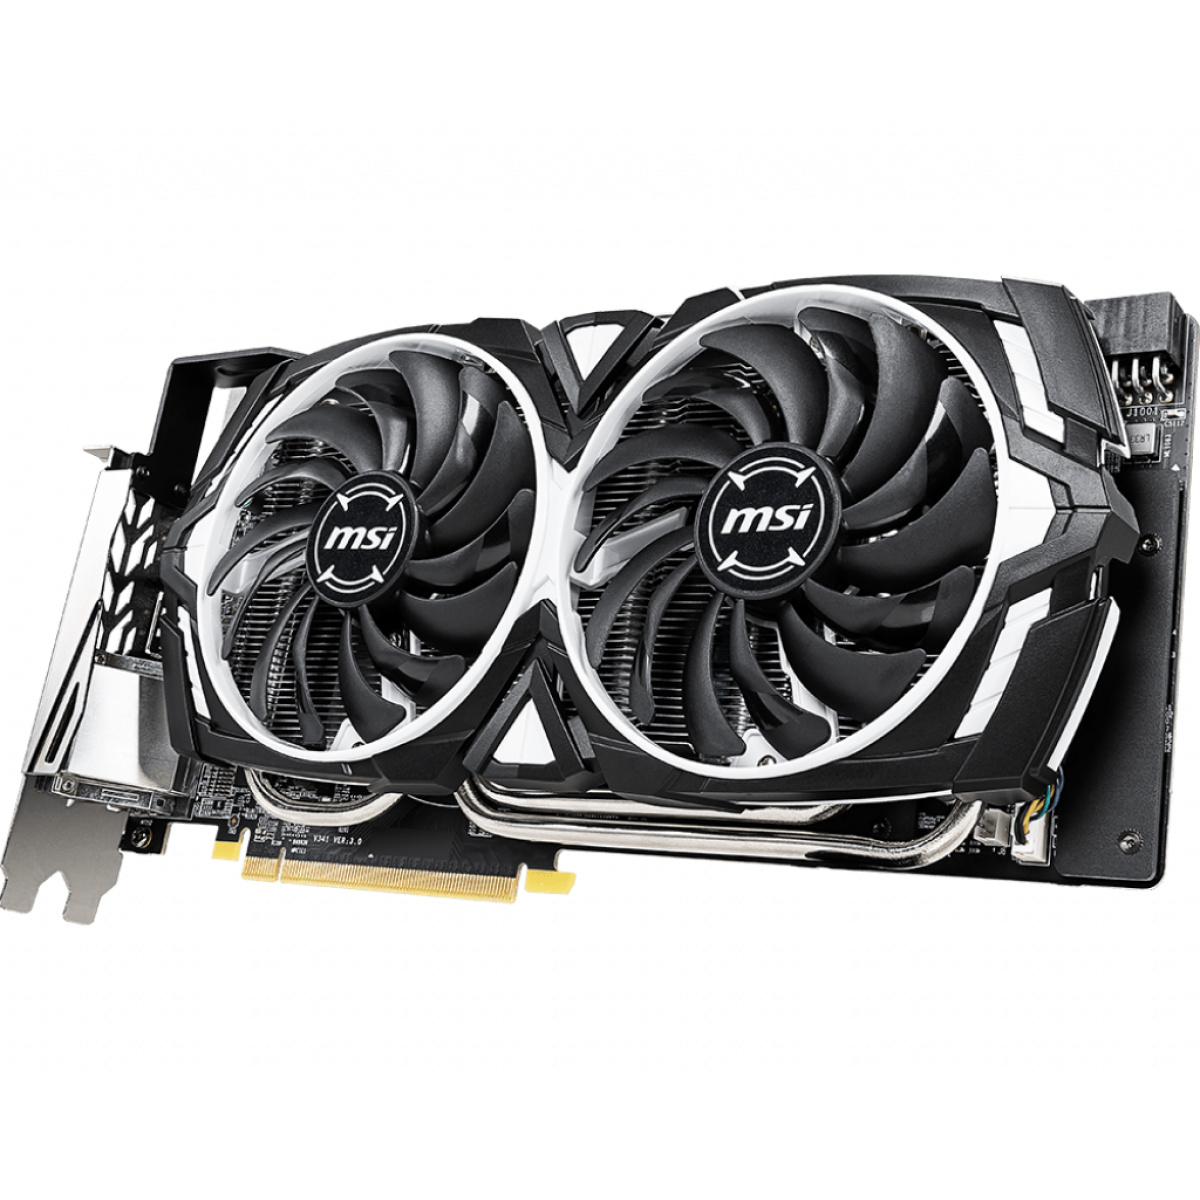 MSI AMD Radeon RX 580 8GB ARMOR 8G Graphics Card